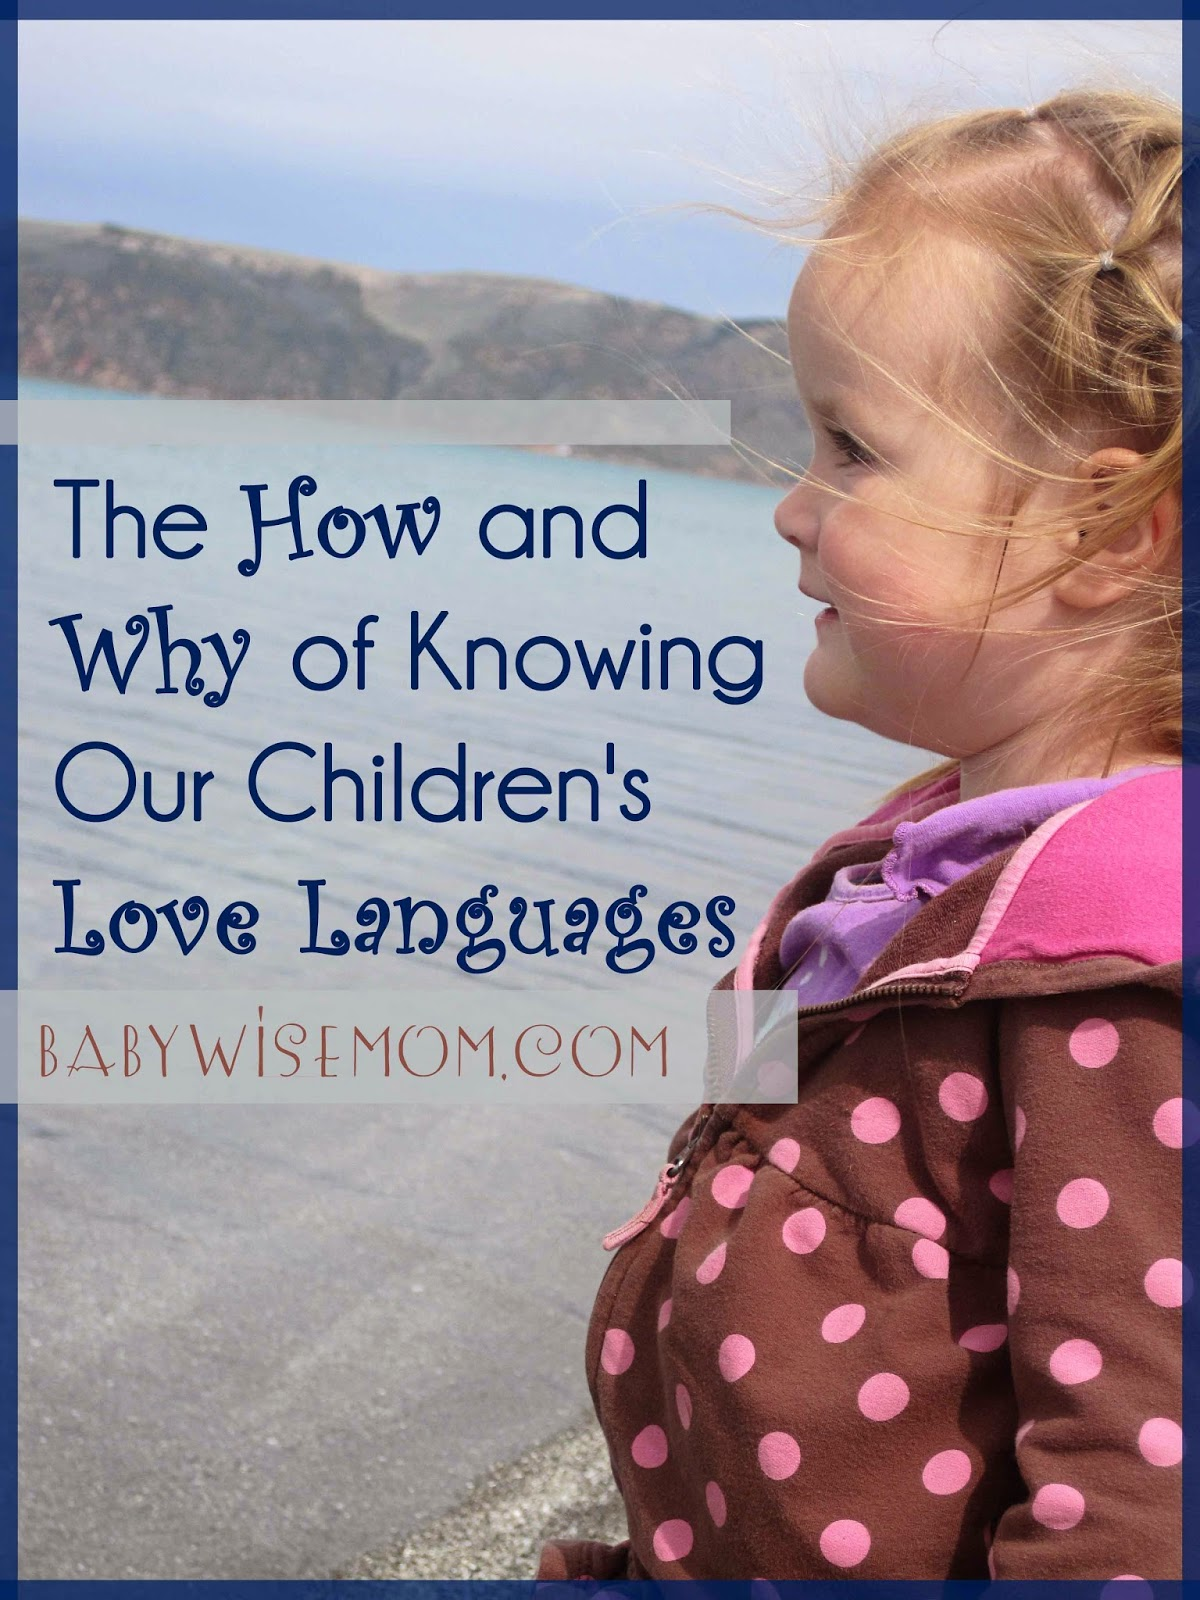 The How and Why of Knowing Our Children's Love Languages